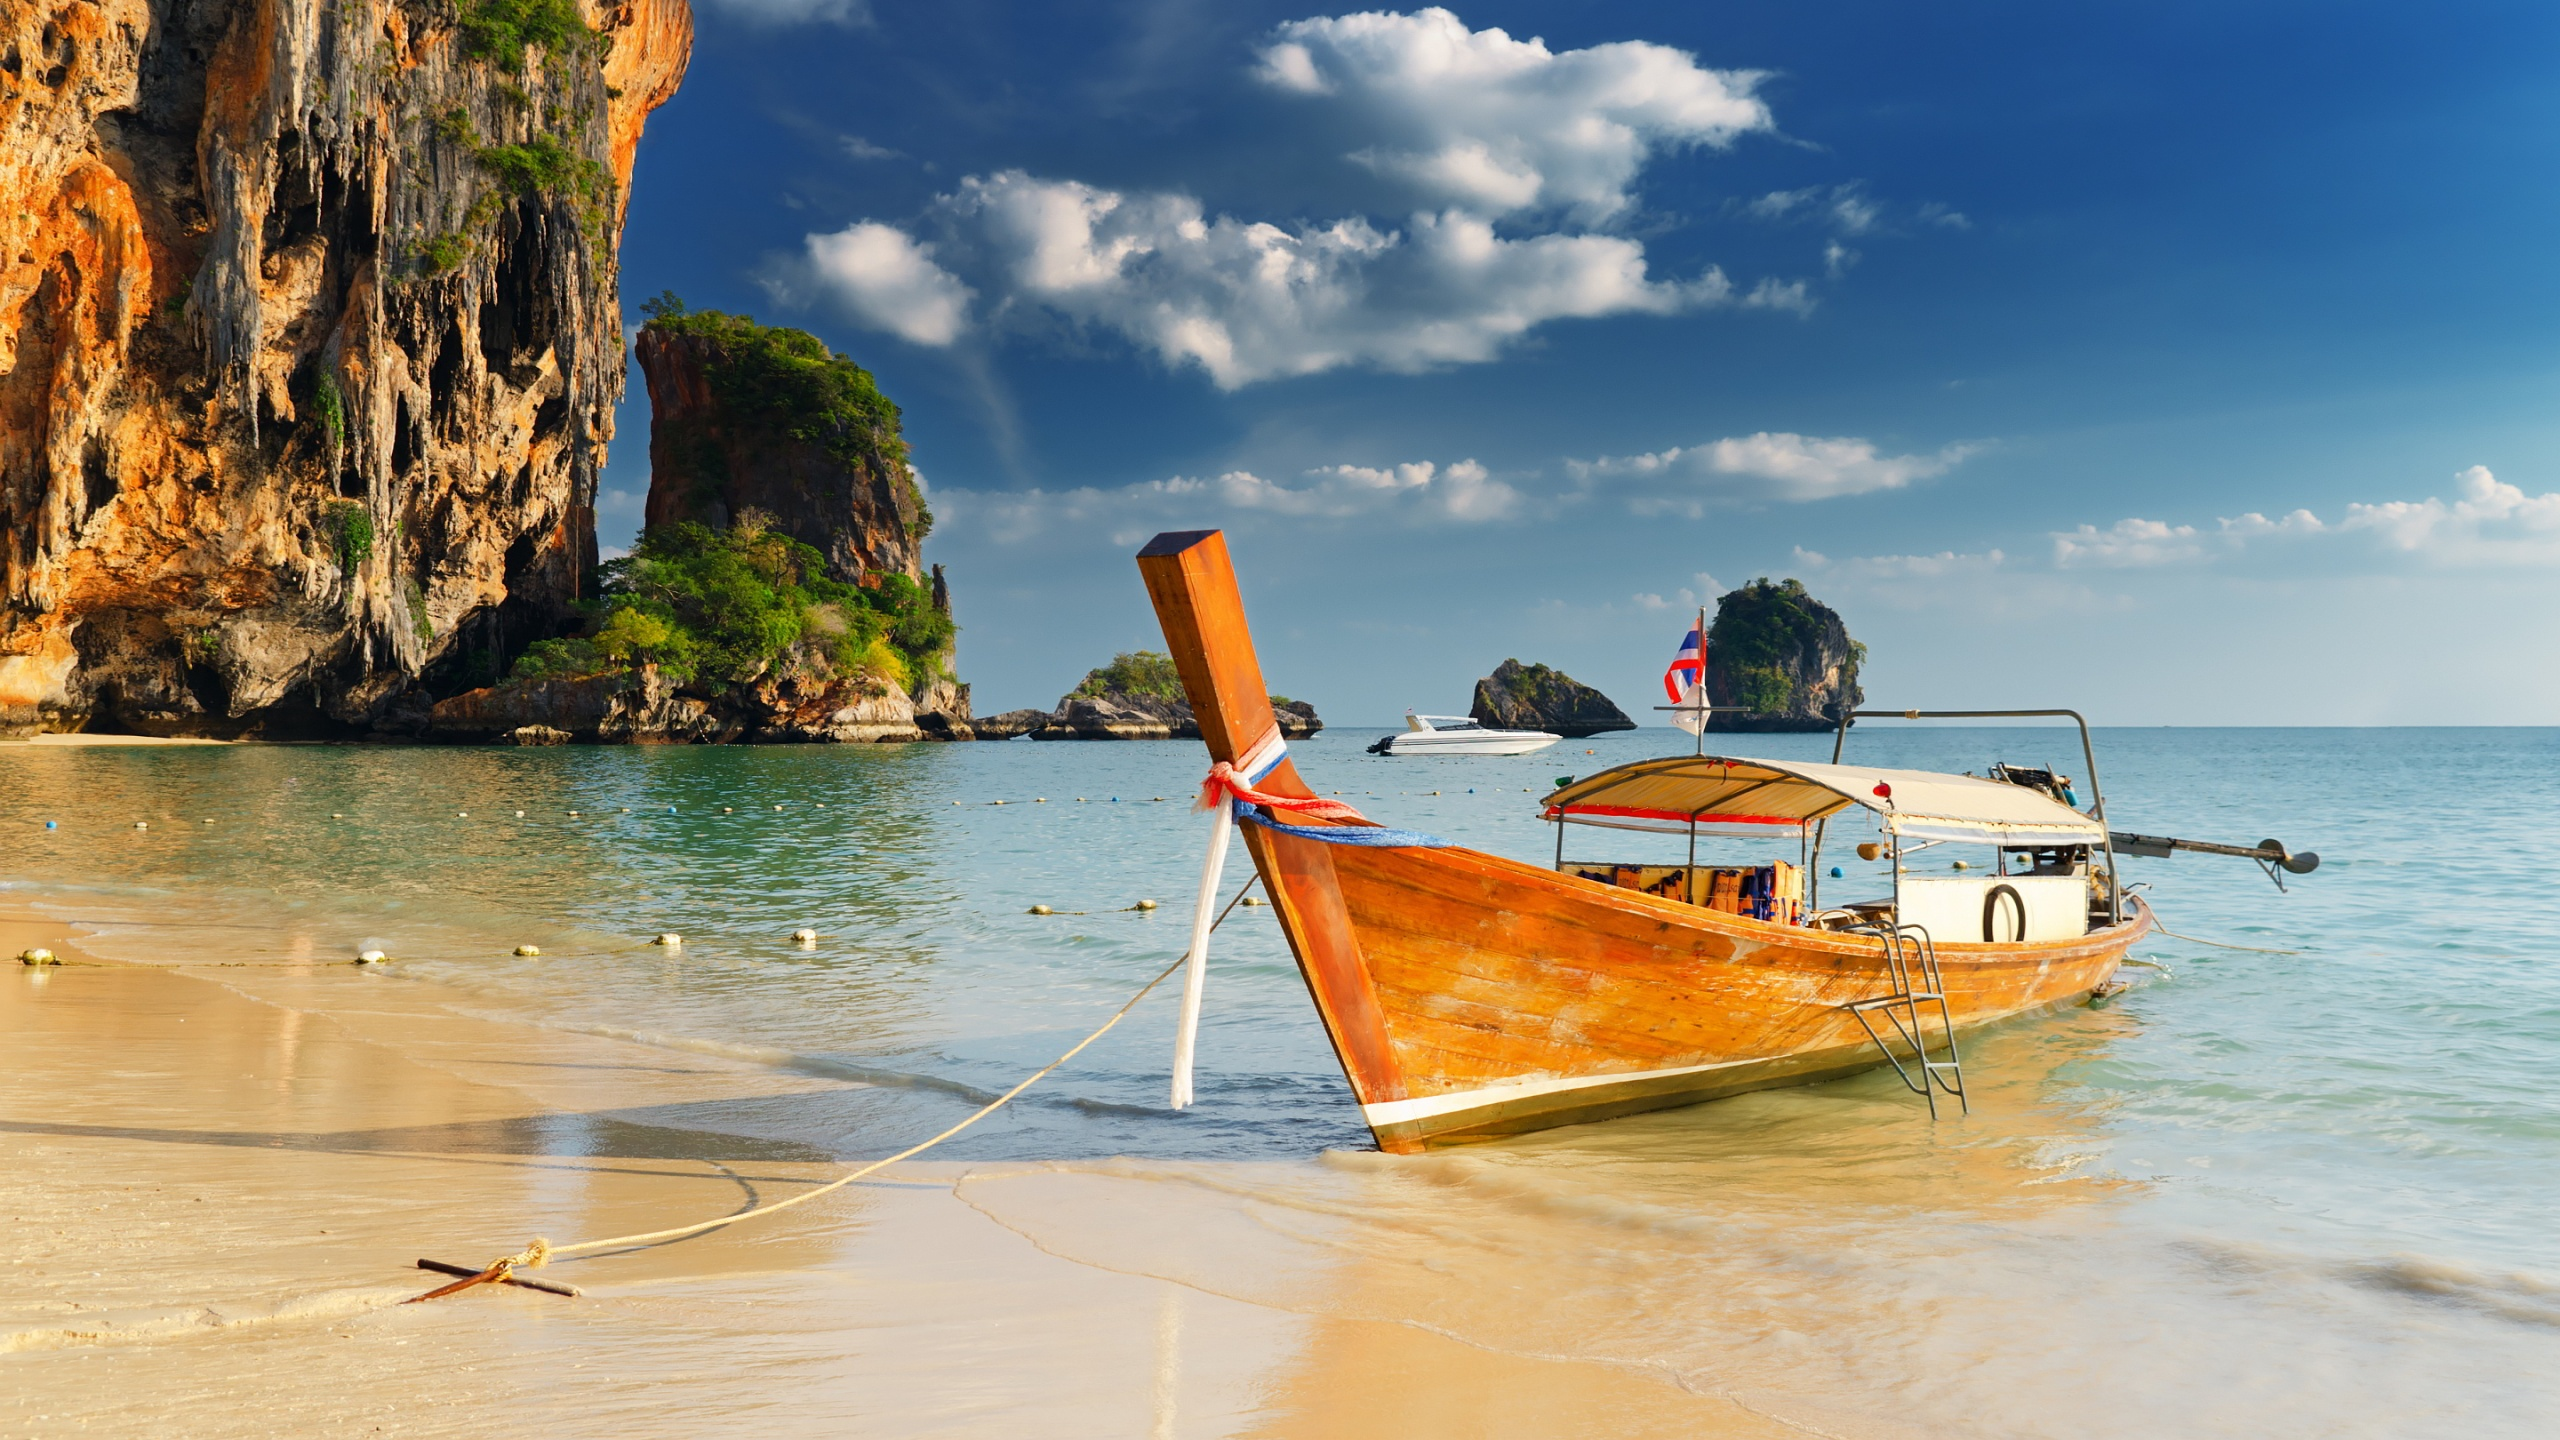 Thailand Beaches And Islands HD Wallpaper Background Images 2560x1440